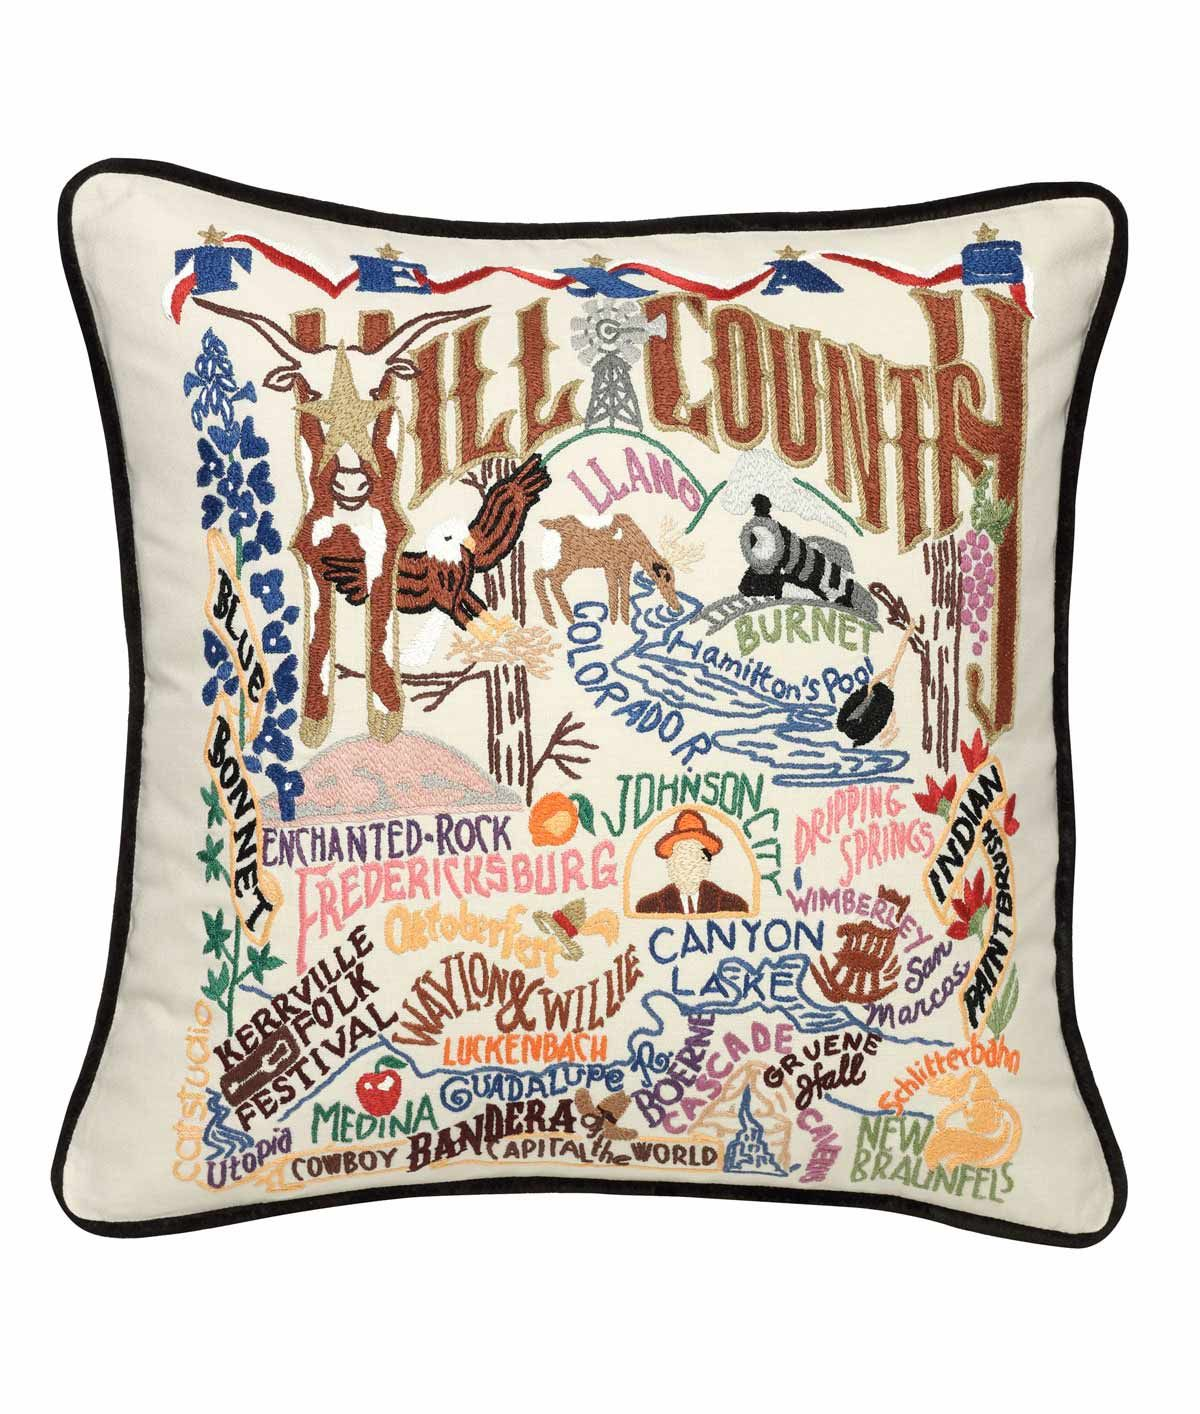 HAND EMBROIDERED REGION PILLOWS | Hand Embroidered Region Pillows - Decorative Americana Features Highlights, Landmarks and Sights from the US, New England to Napa Valley and More | UncommonGoods